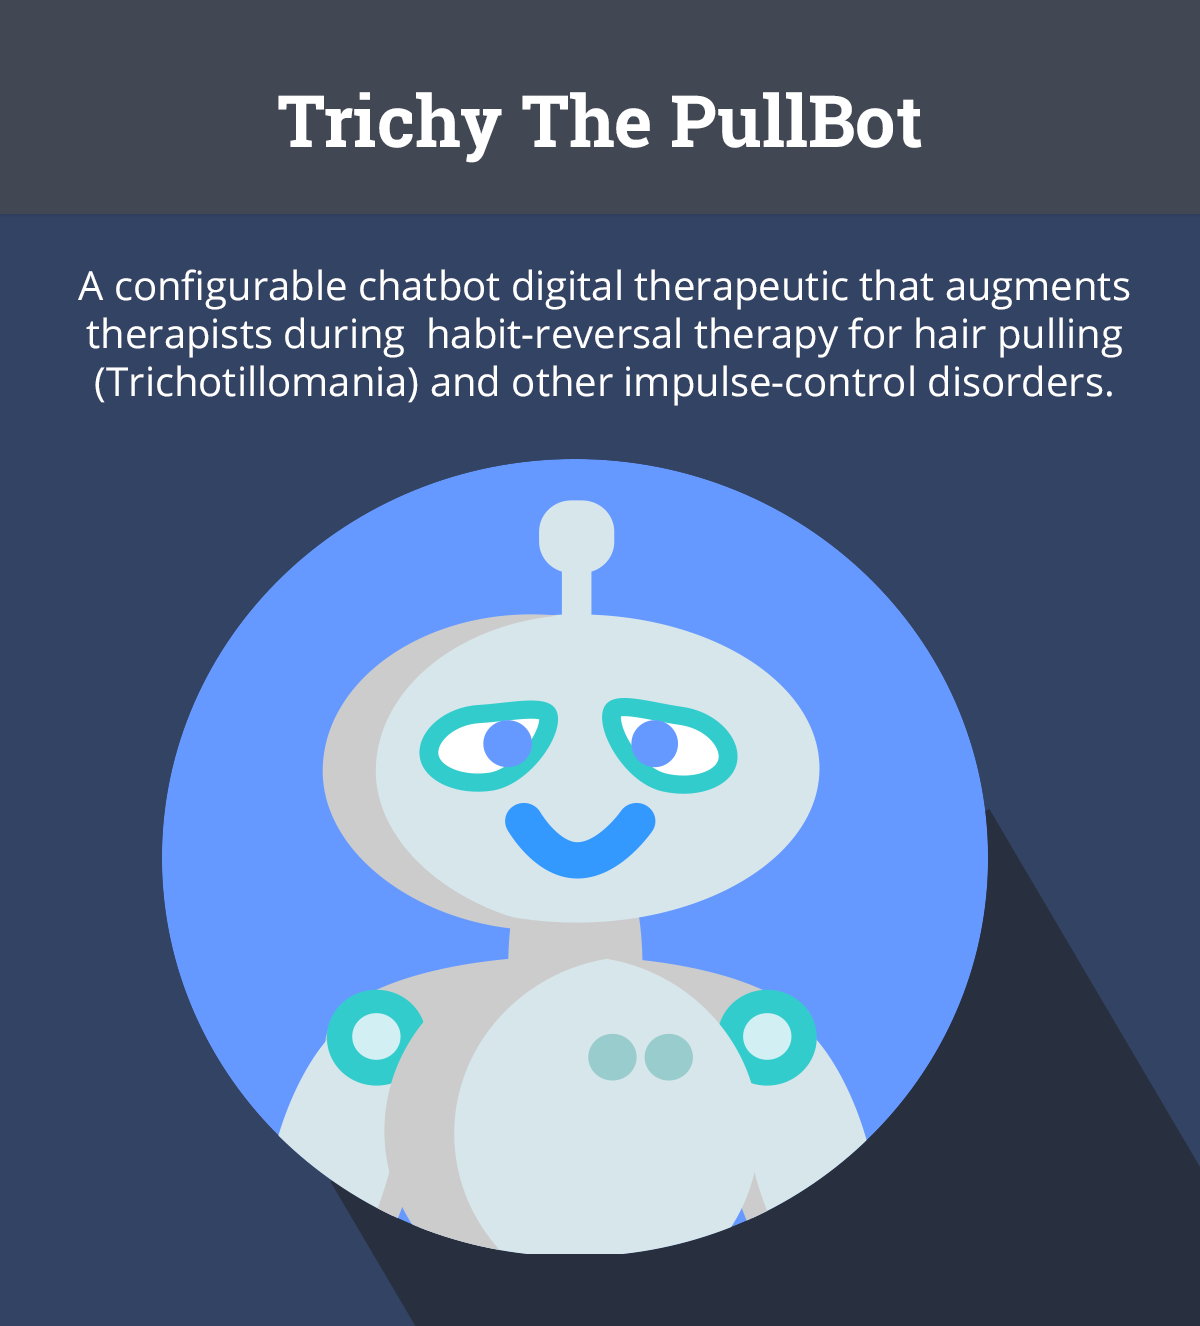 Trichy The PullBot